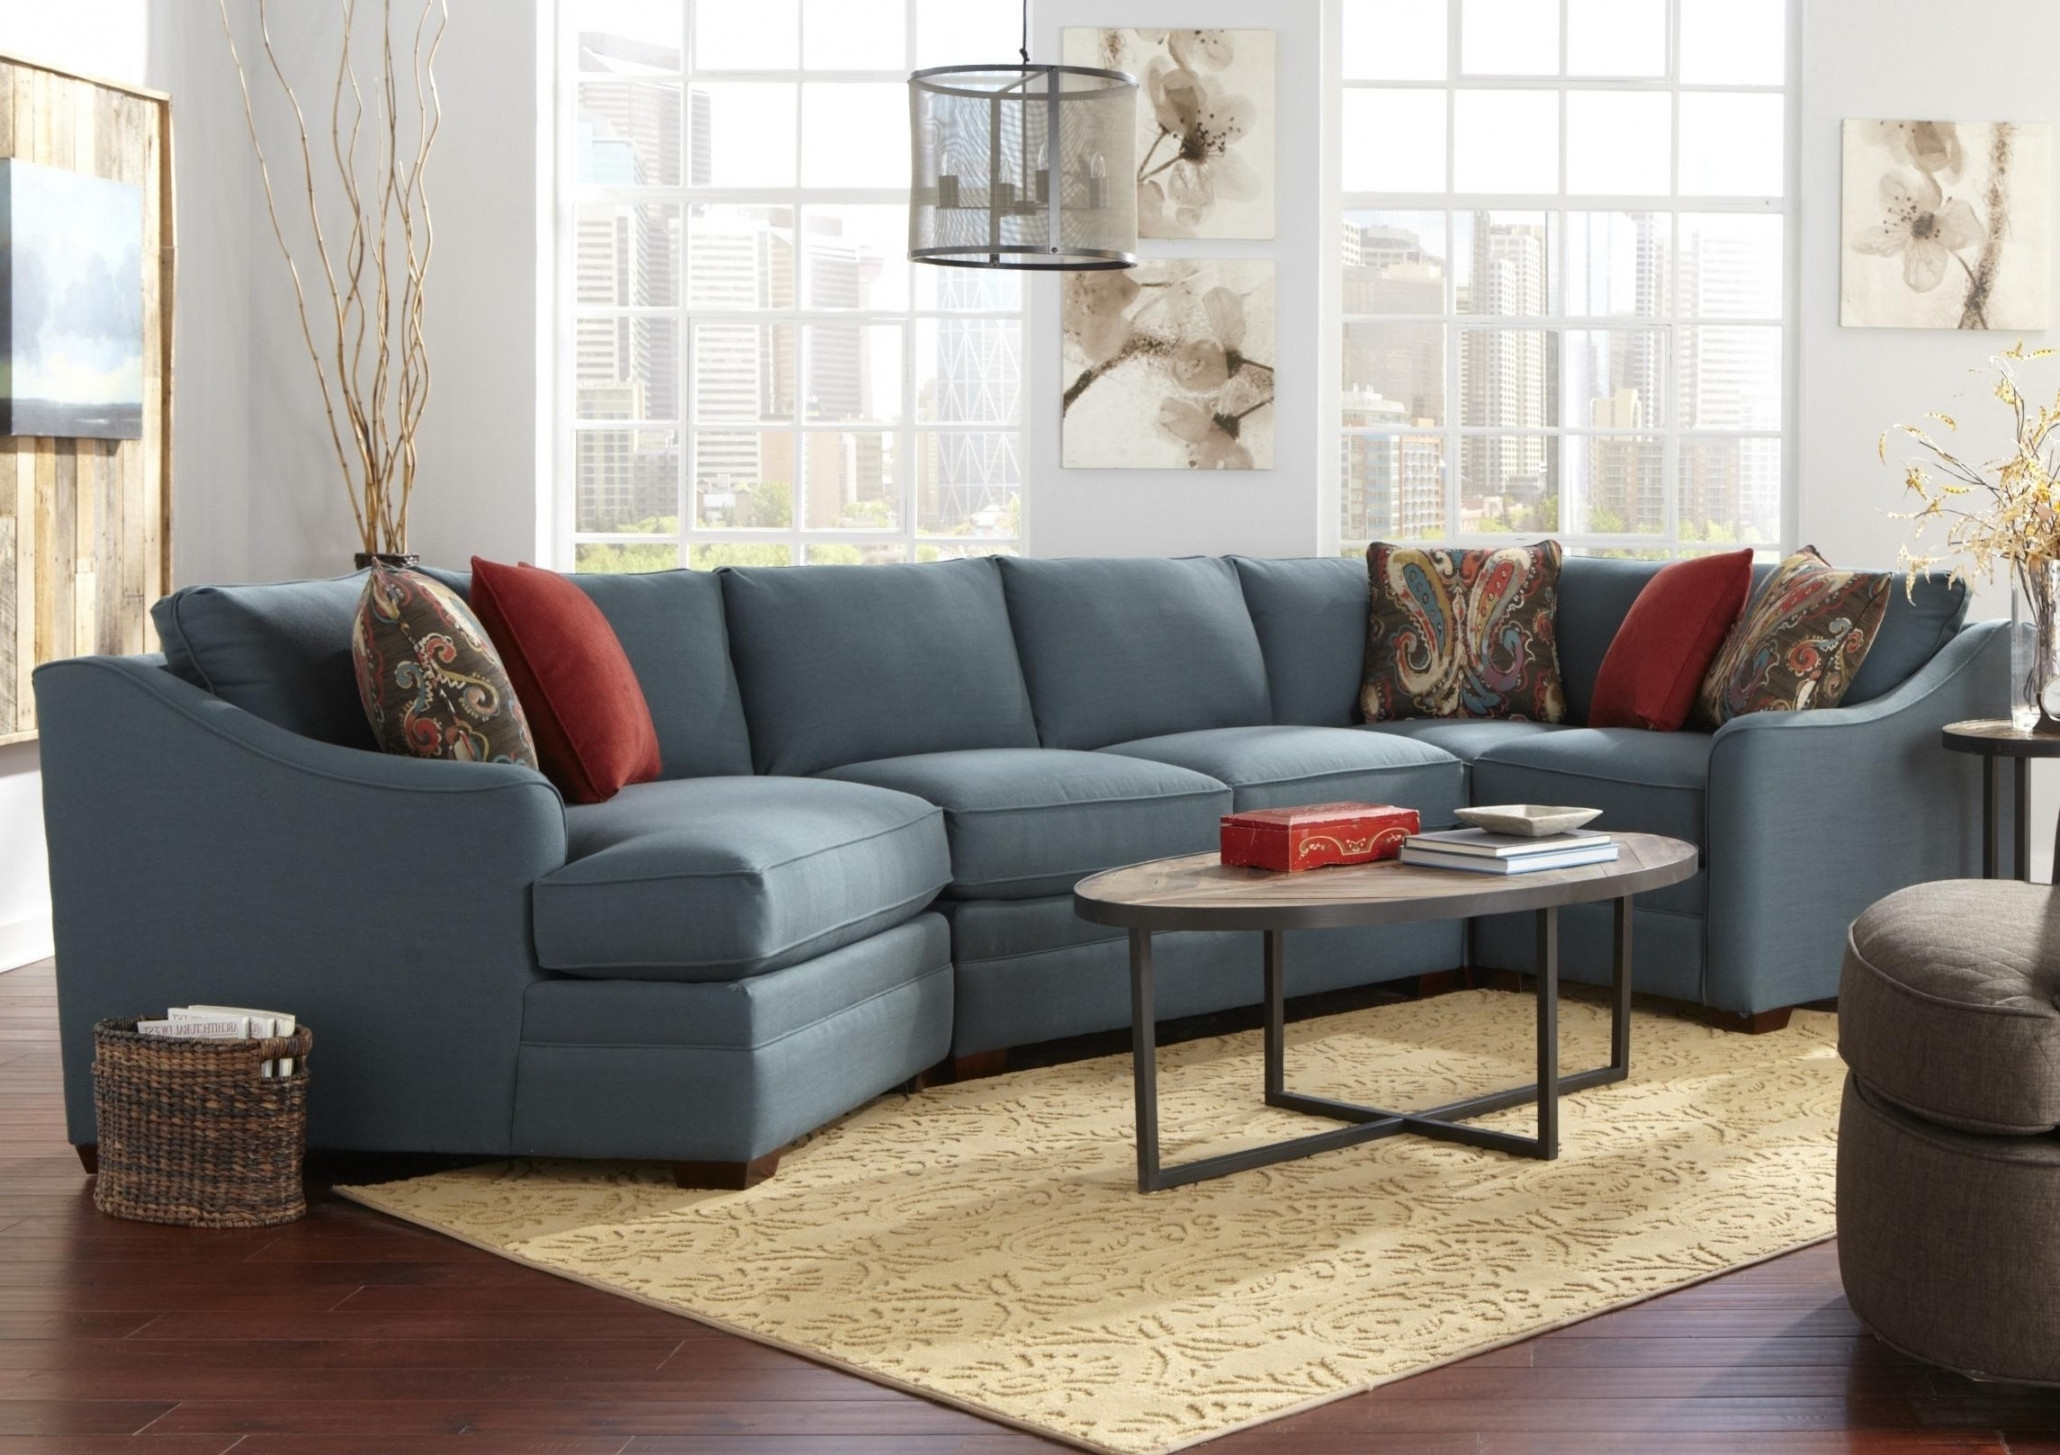 Elegant Sectional Sofa Under 200 – Buildsimplehome | House With Sectional Sofas Under  (Image 5 of 10)